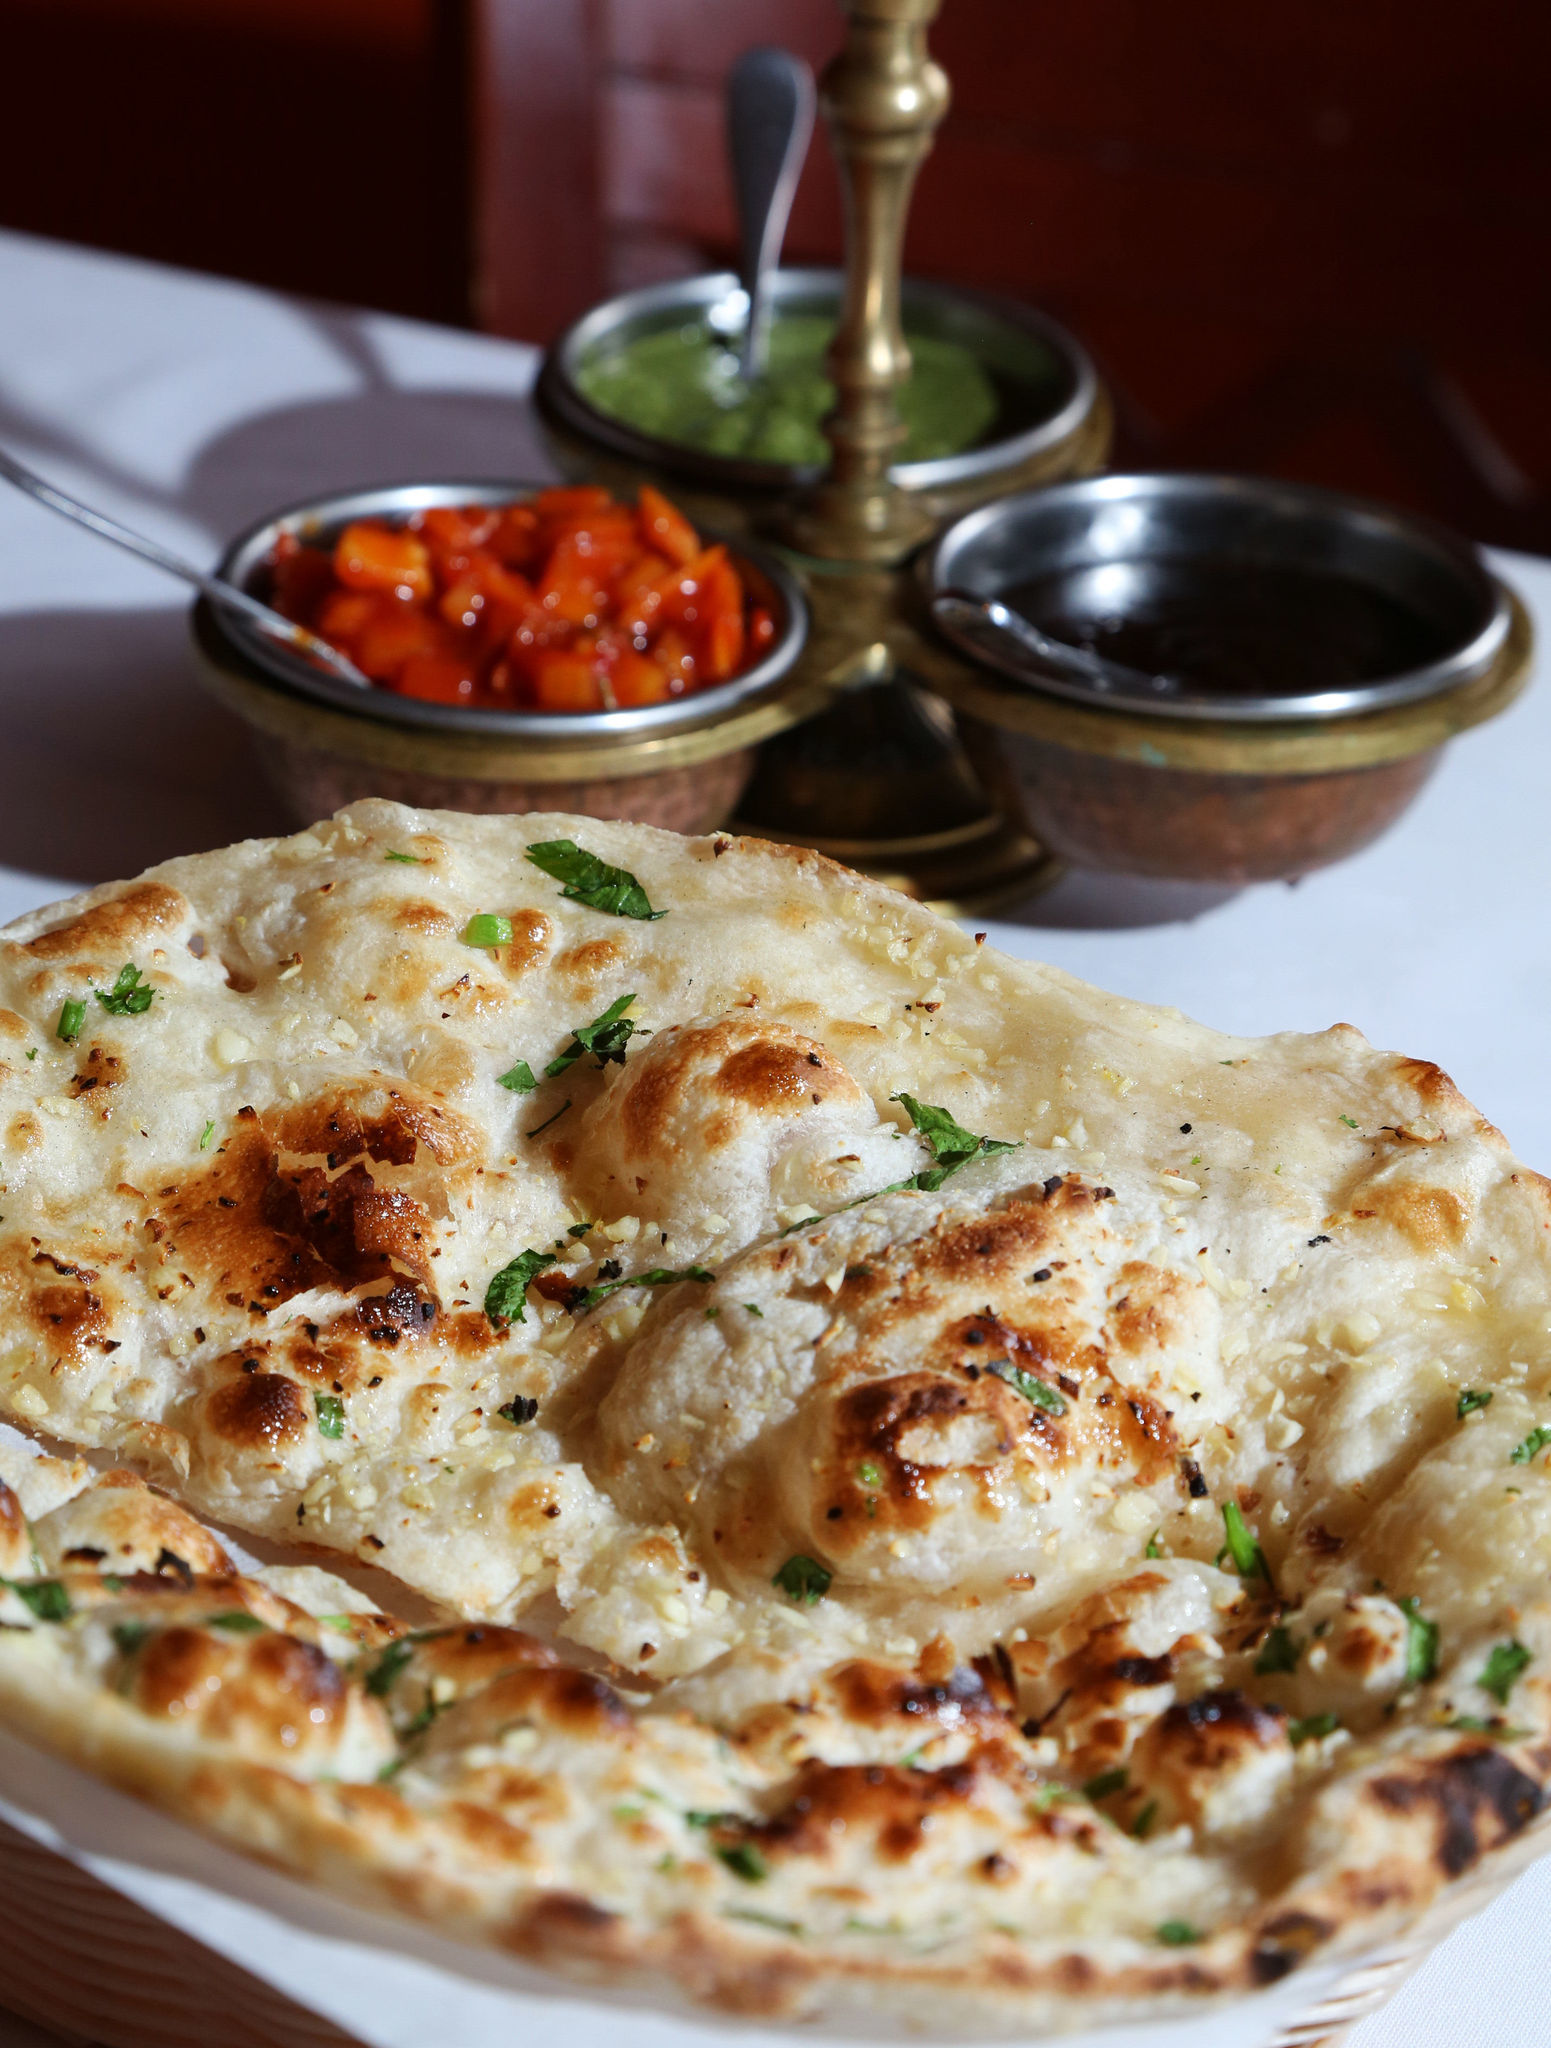 Top Broward restaurants - Taste Buds of India restaurant